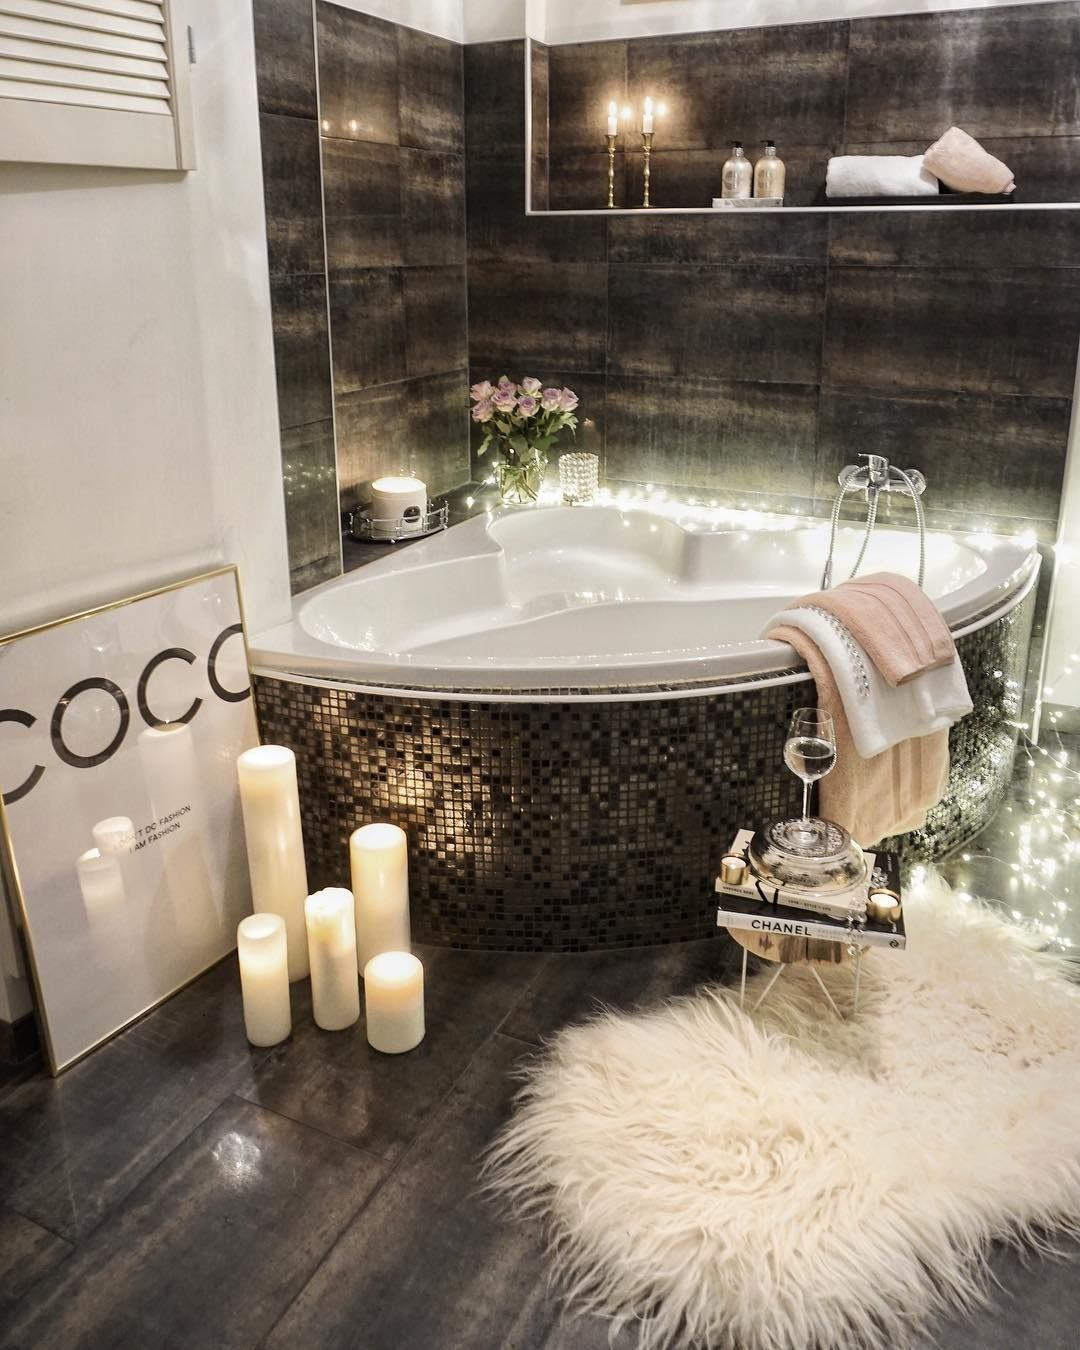 show design of a bathtub. If you are confused what kind of shower room design suits your  Below can select trend Inspiration that will 7 648 Likes 228 Comments Easyinterieur easyinterieur on